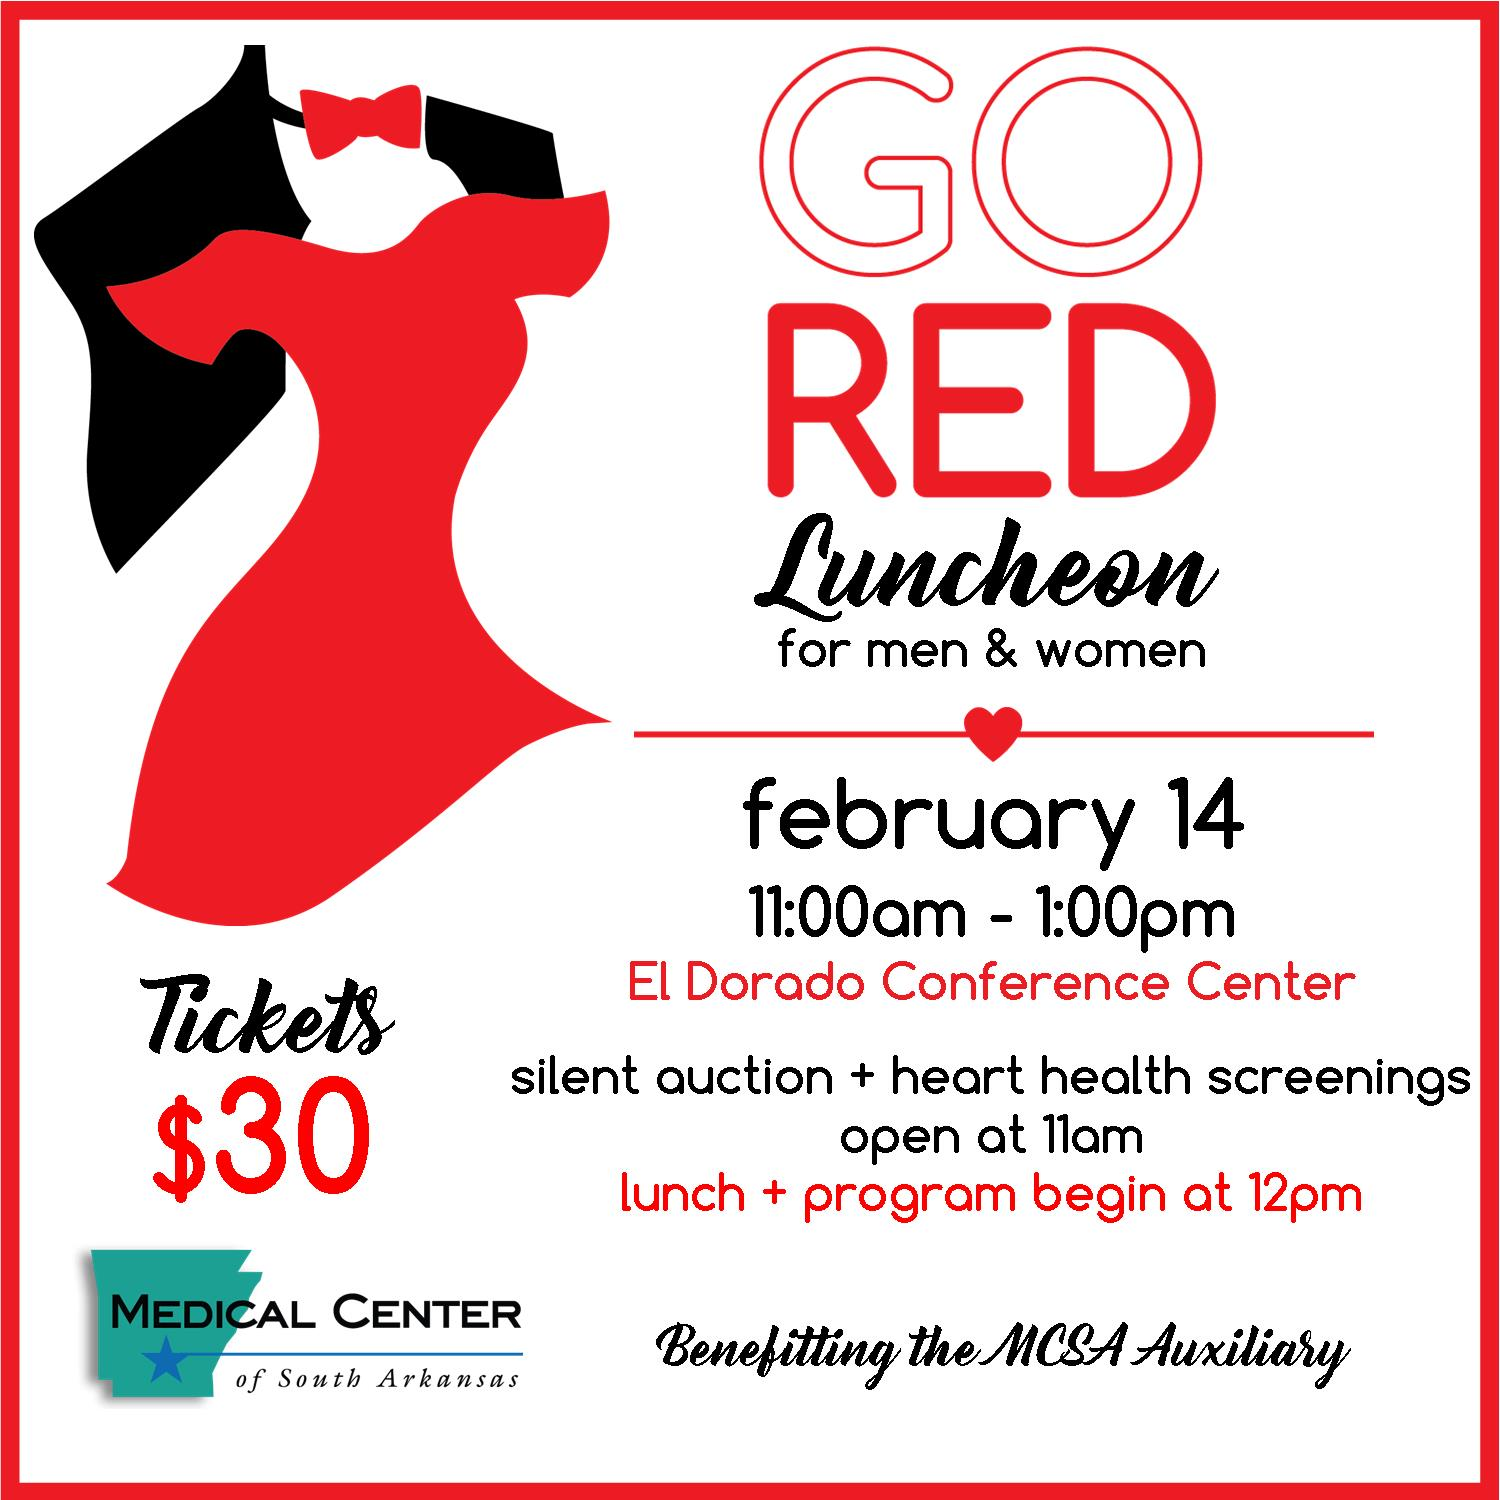 Go Red Save the Date